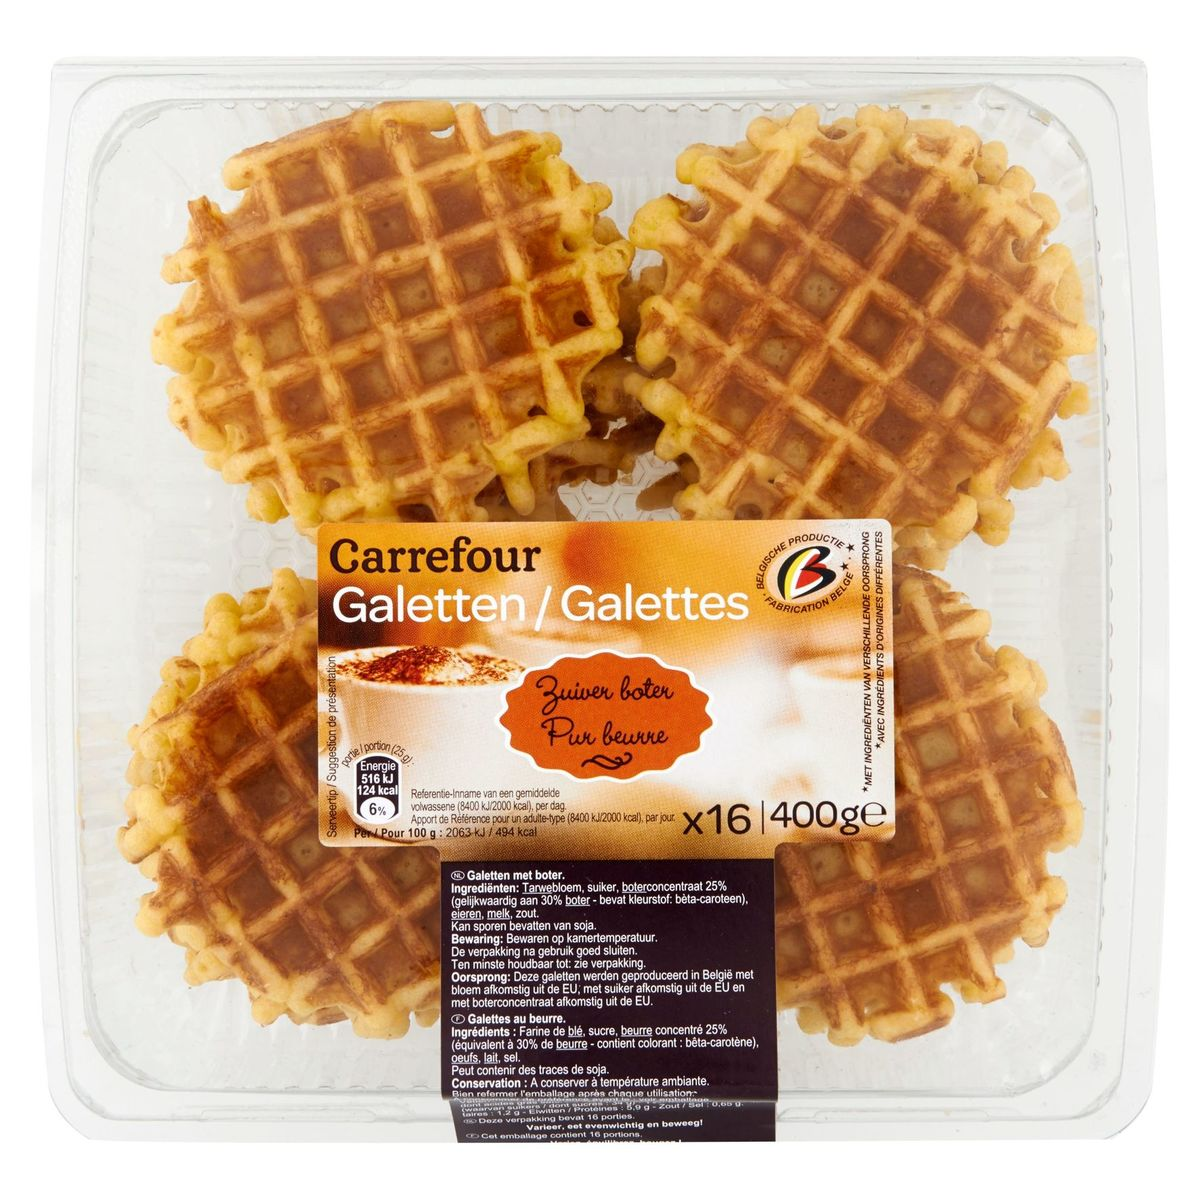 Carrefour 16 Galettes Pur Beurre 400 g